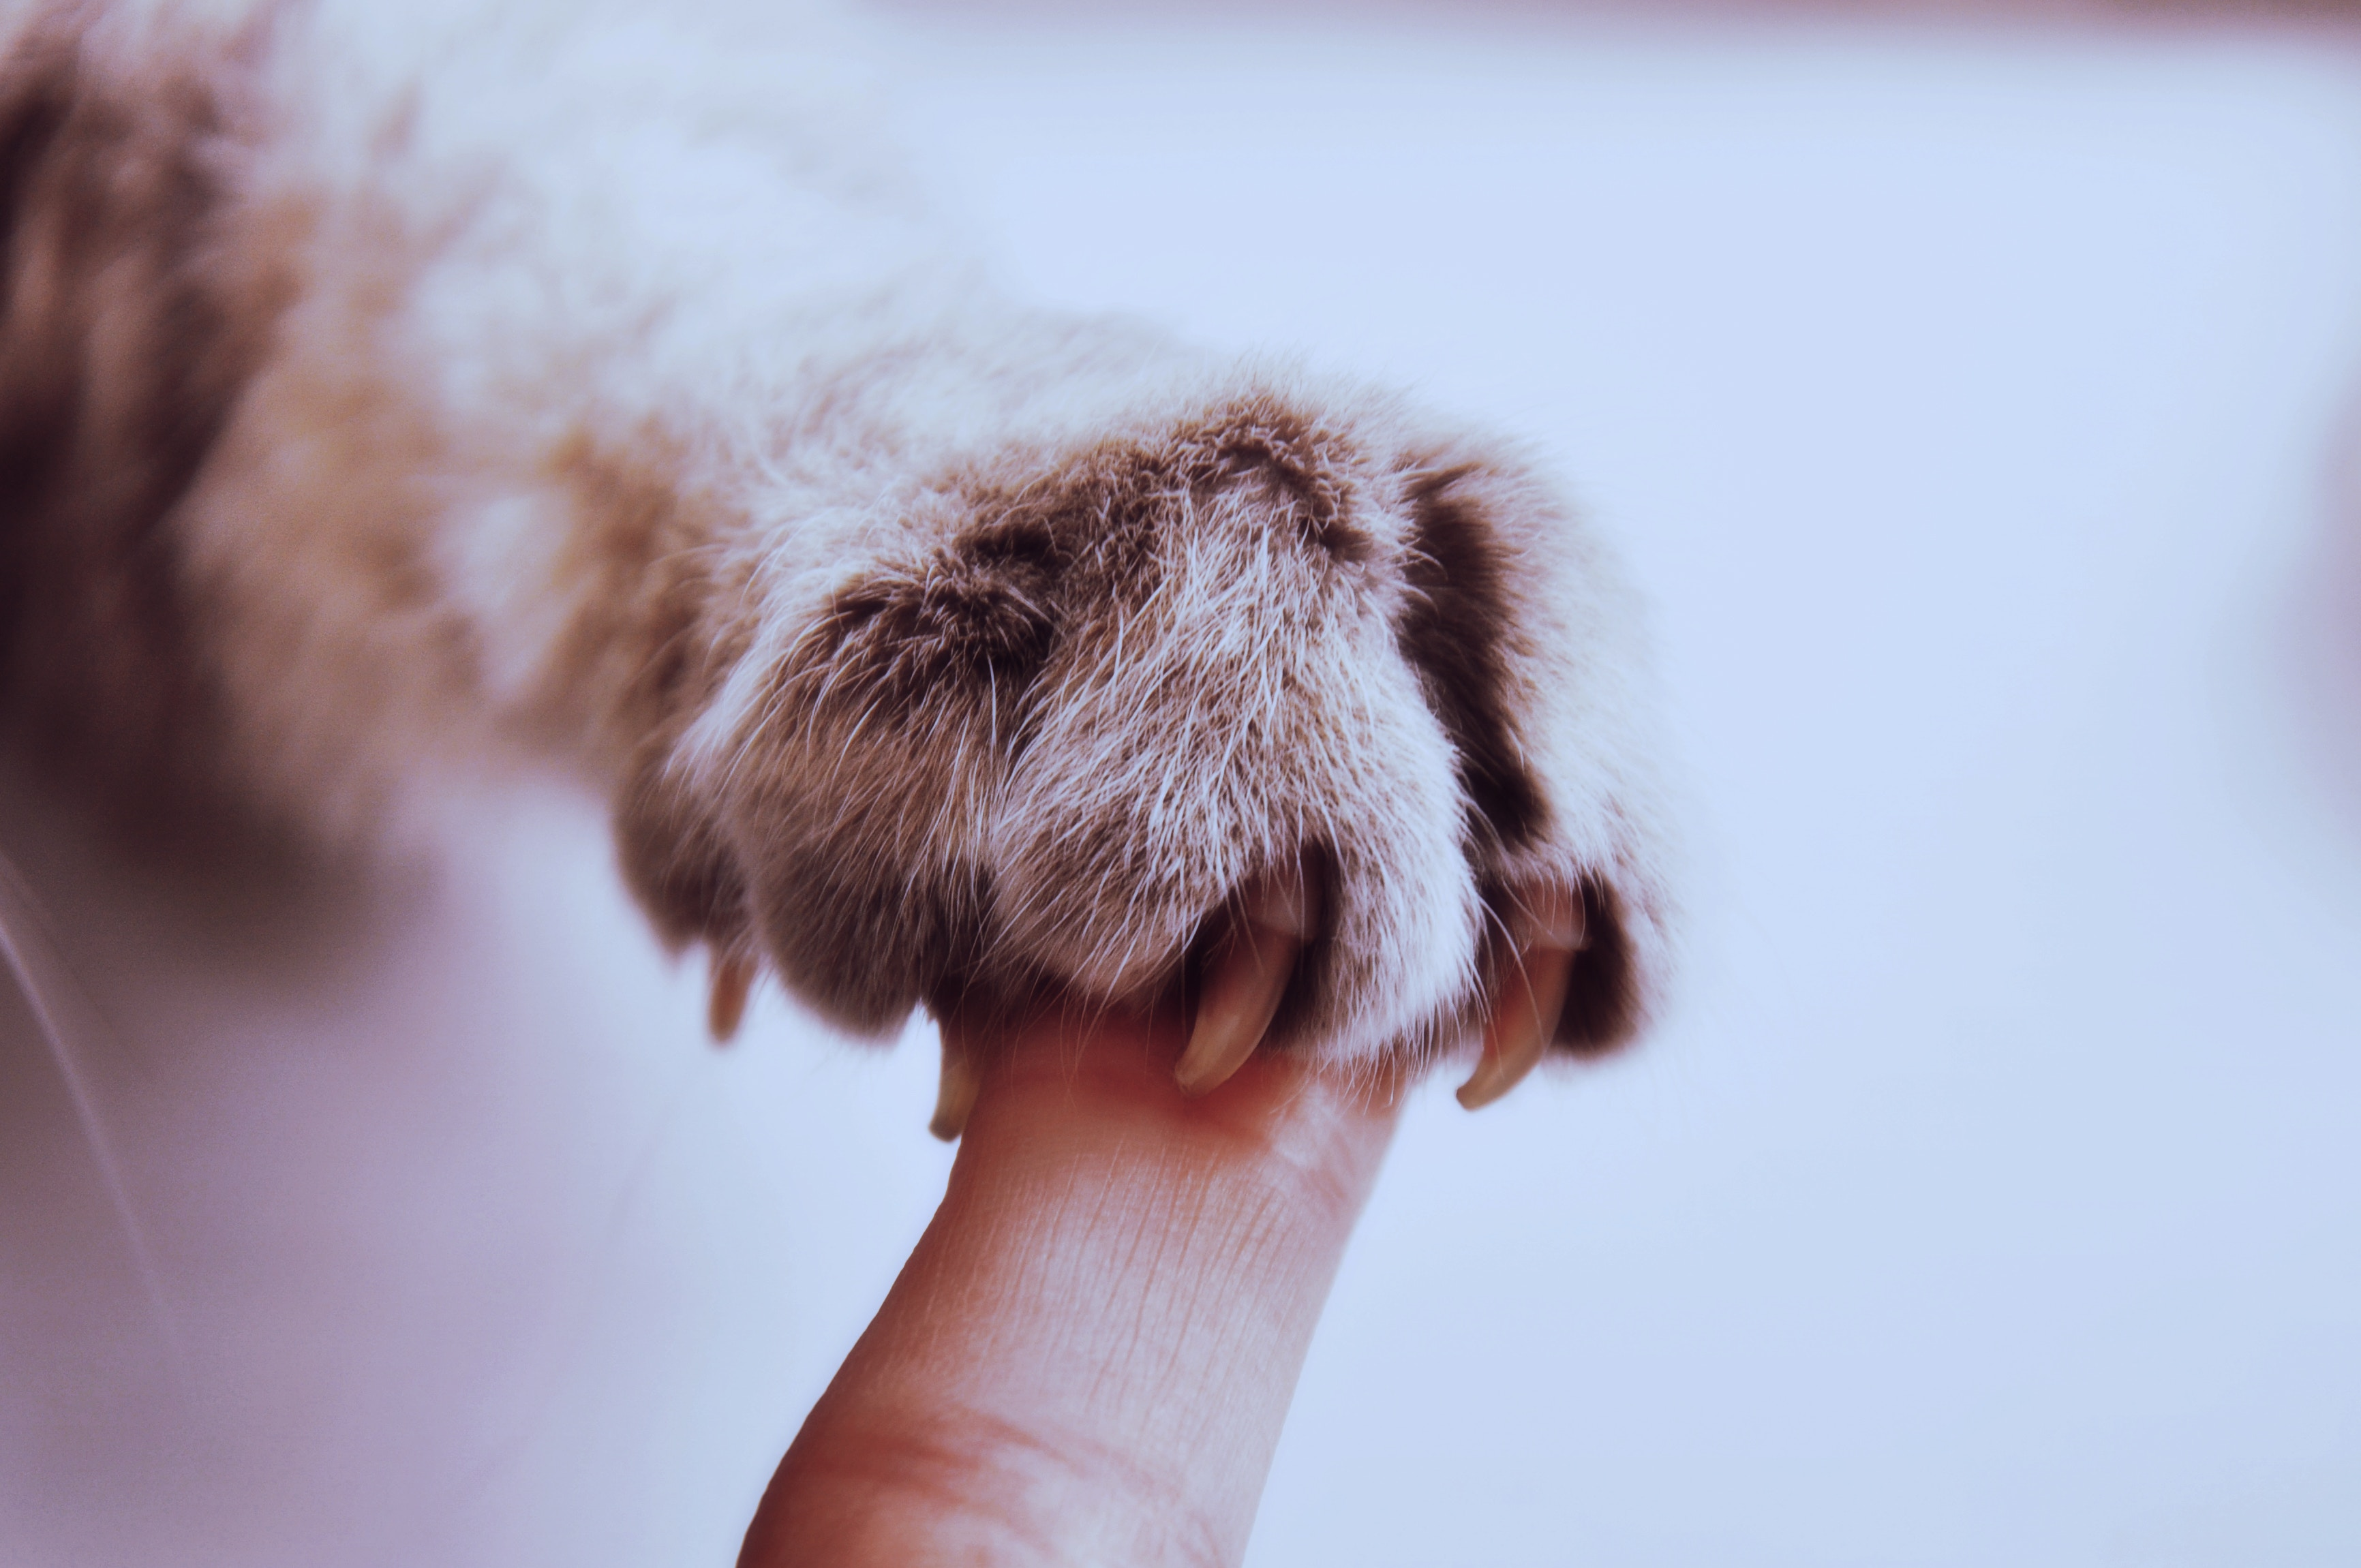 118532 download wallpaper Animals, Paw, Claws, Cat, Finger, Friendship screensavers and pictures for free